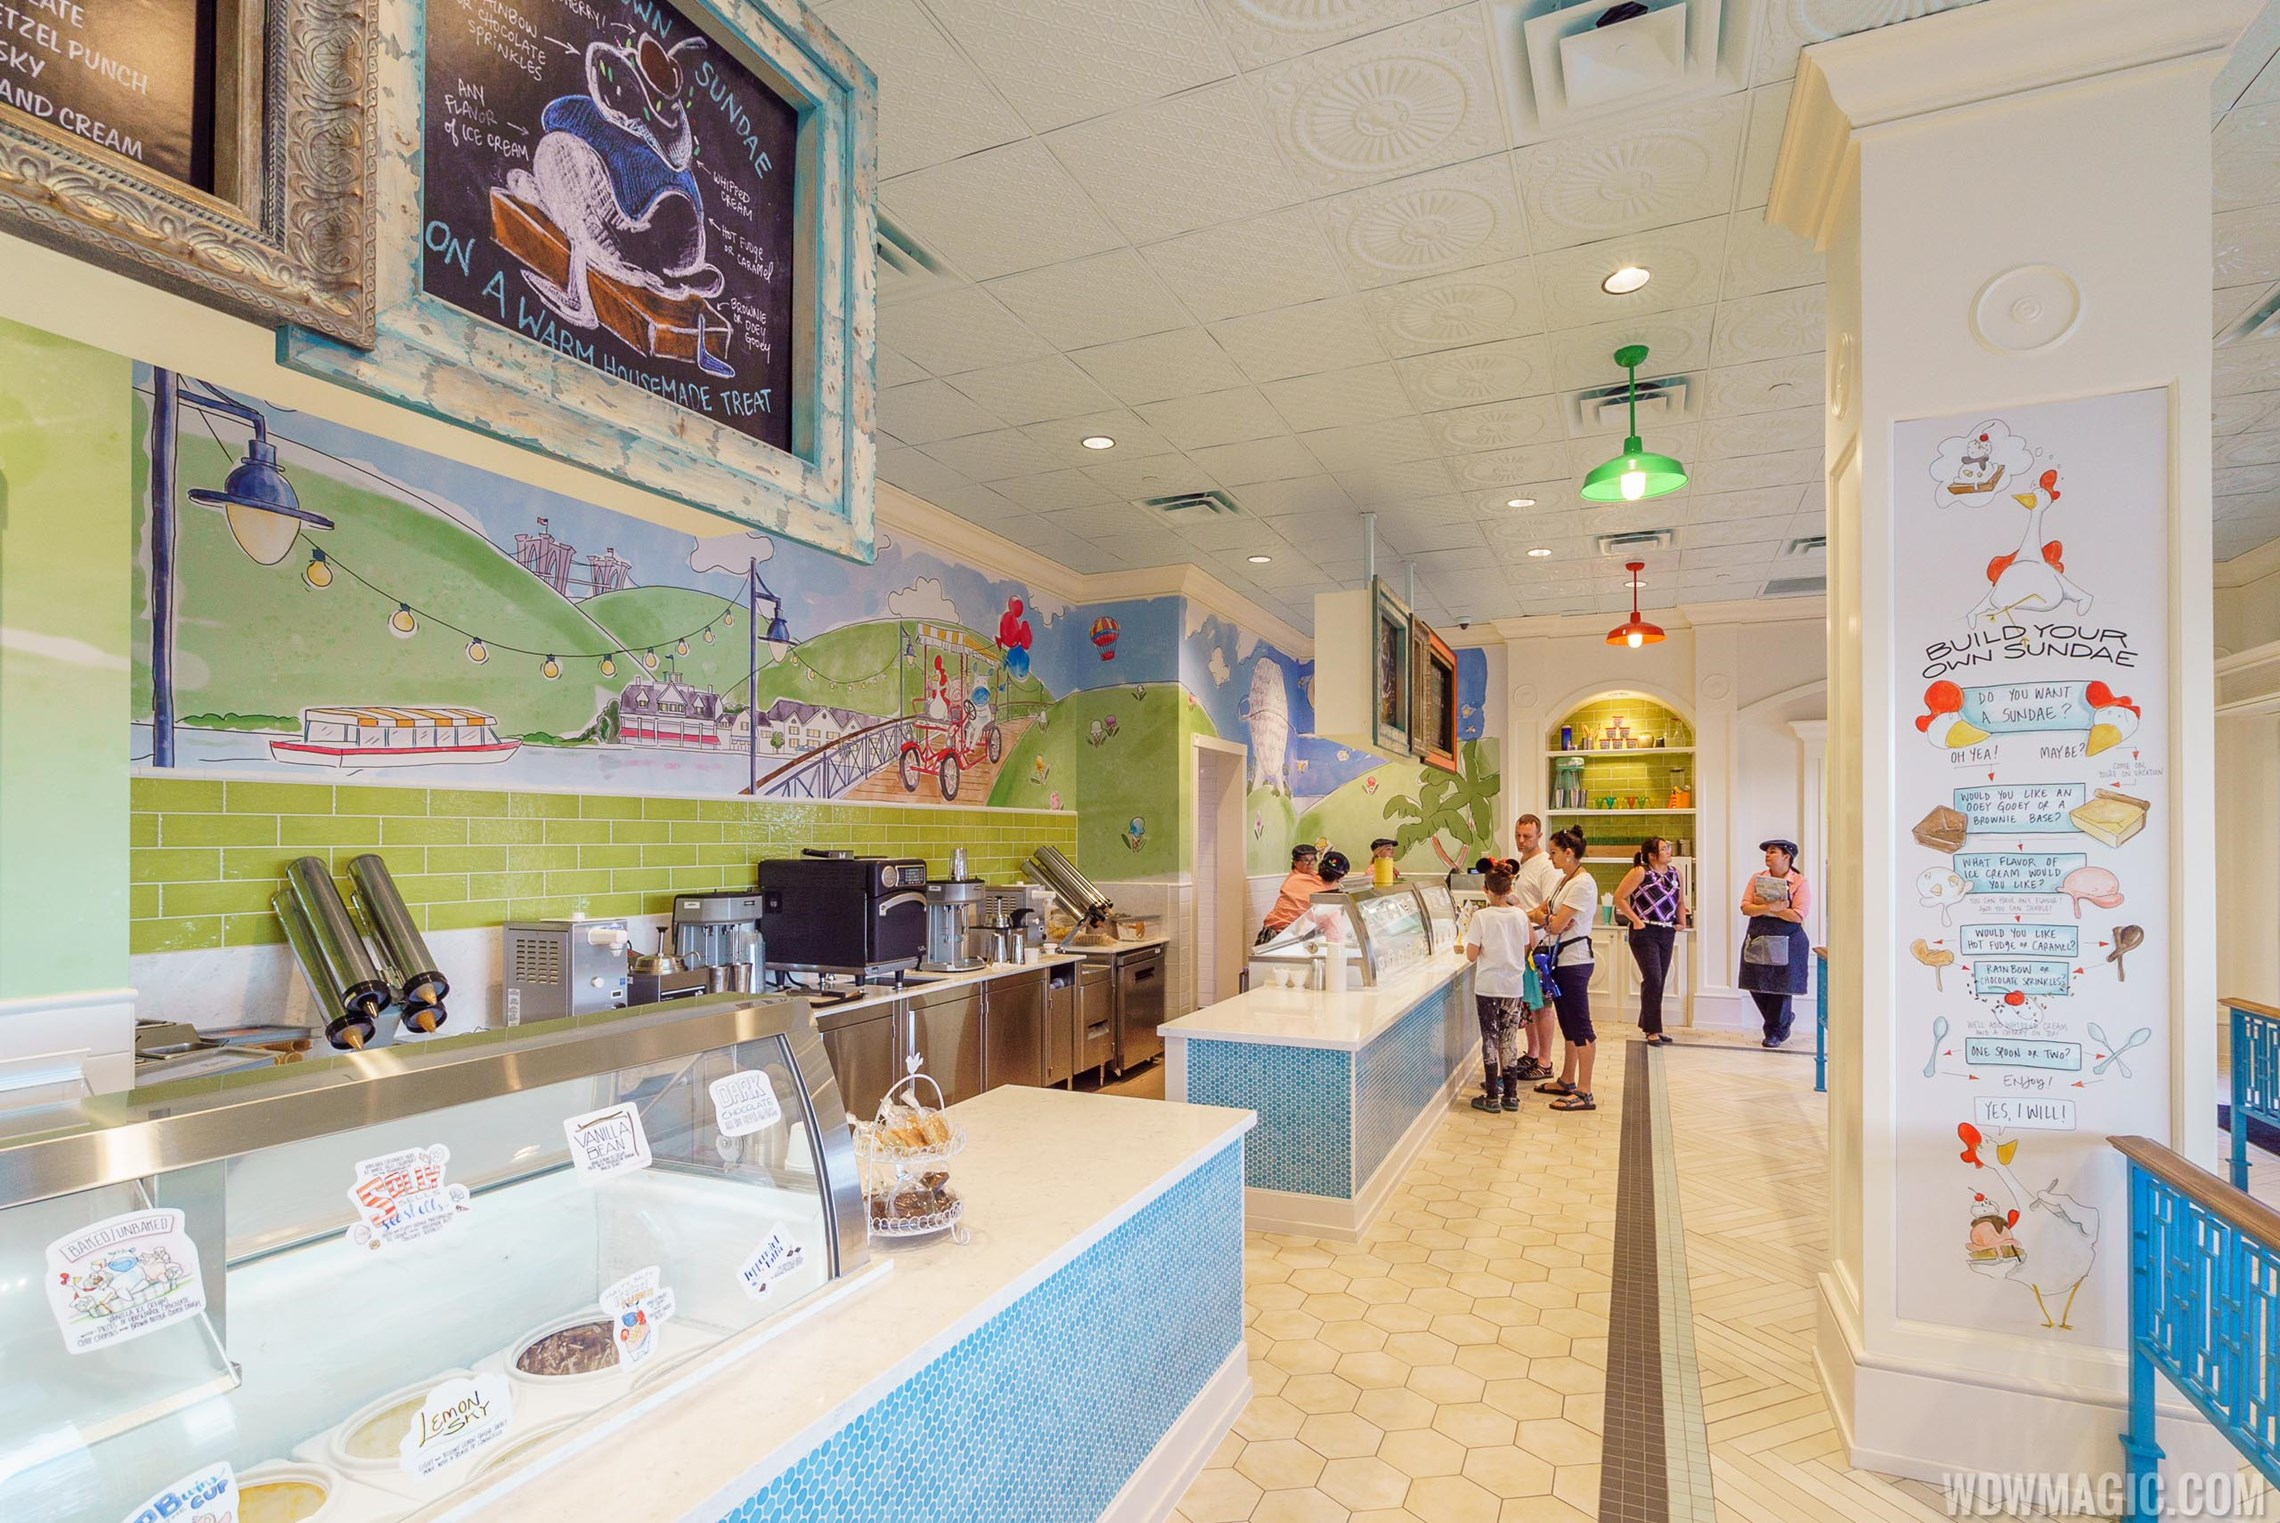 Ample Hills Creamery overview